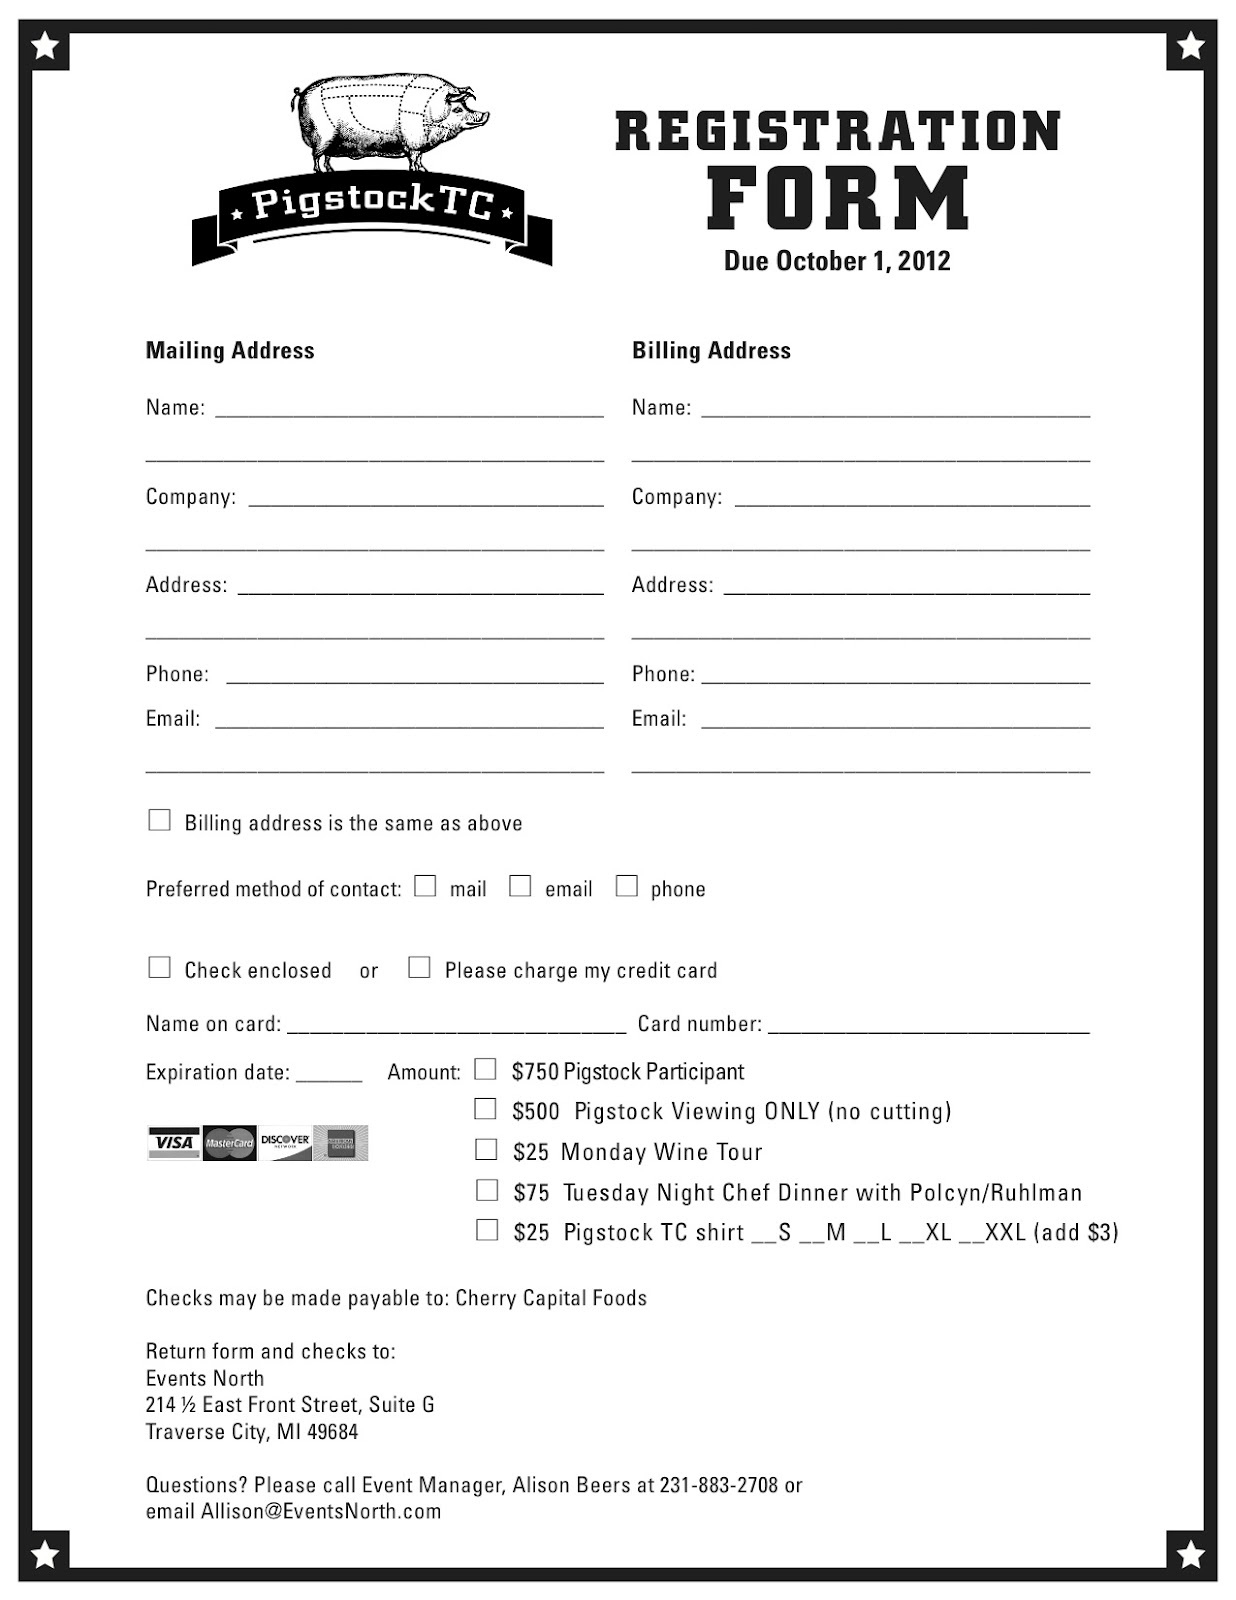 Register Form Template Free Download - Yeniscale.co  Free Download Blank Summer Camp Application